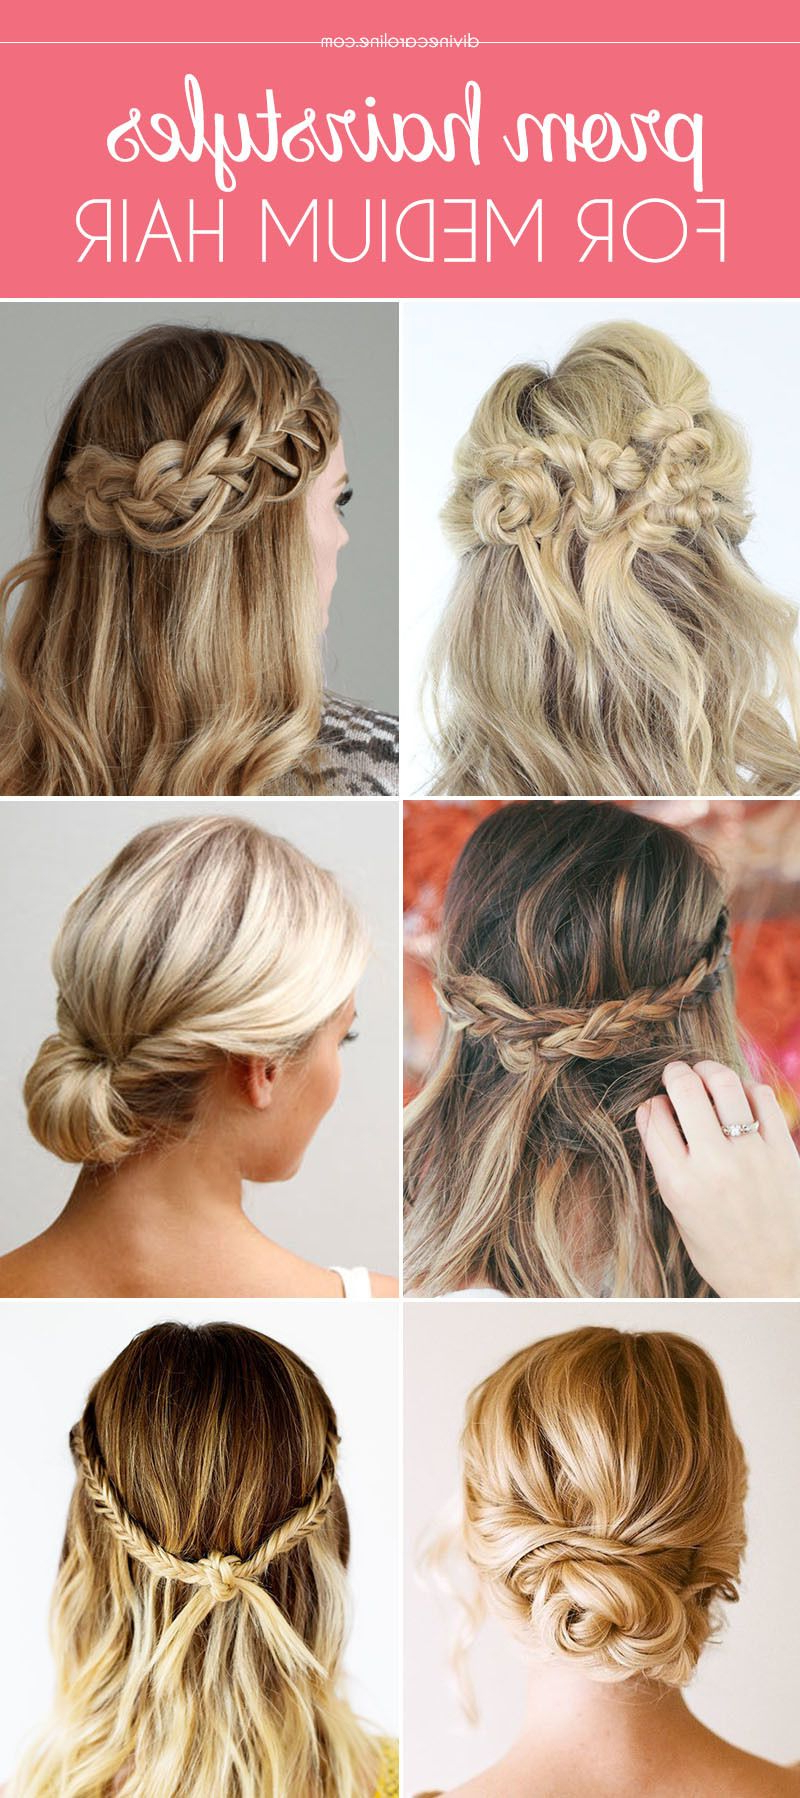 Hairstyles (View 10 of 20)